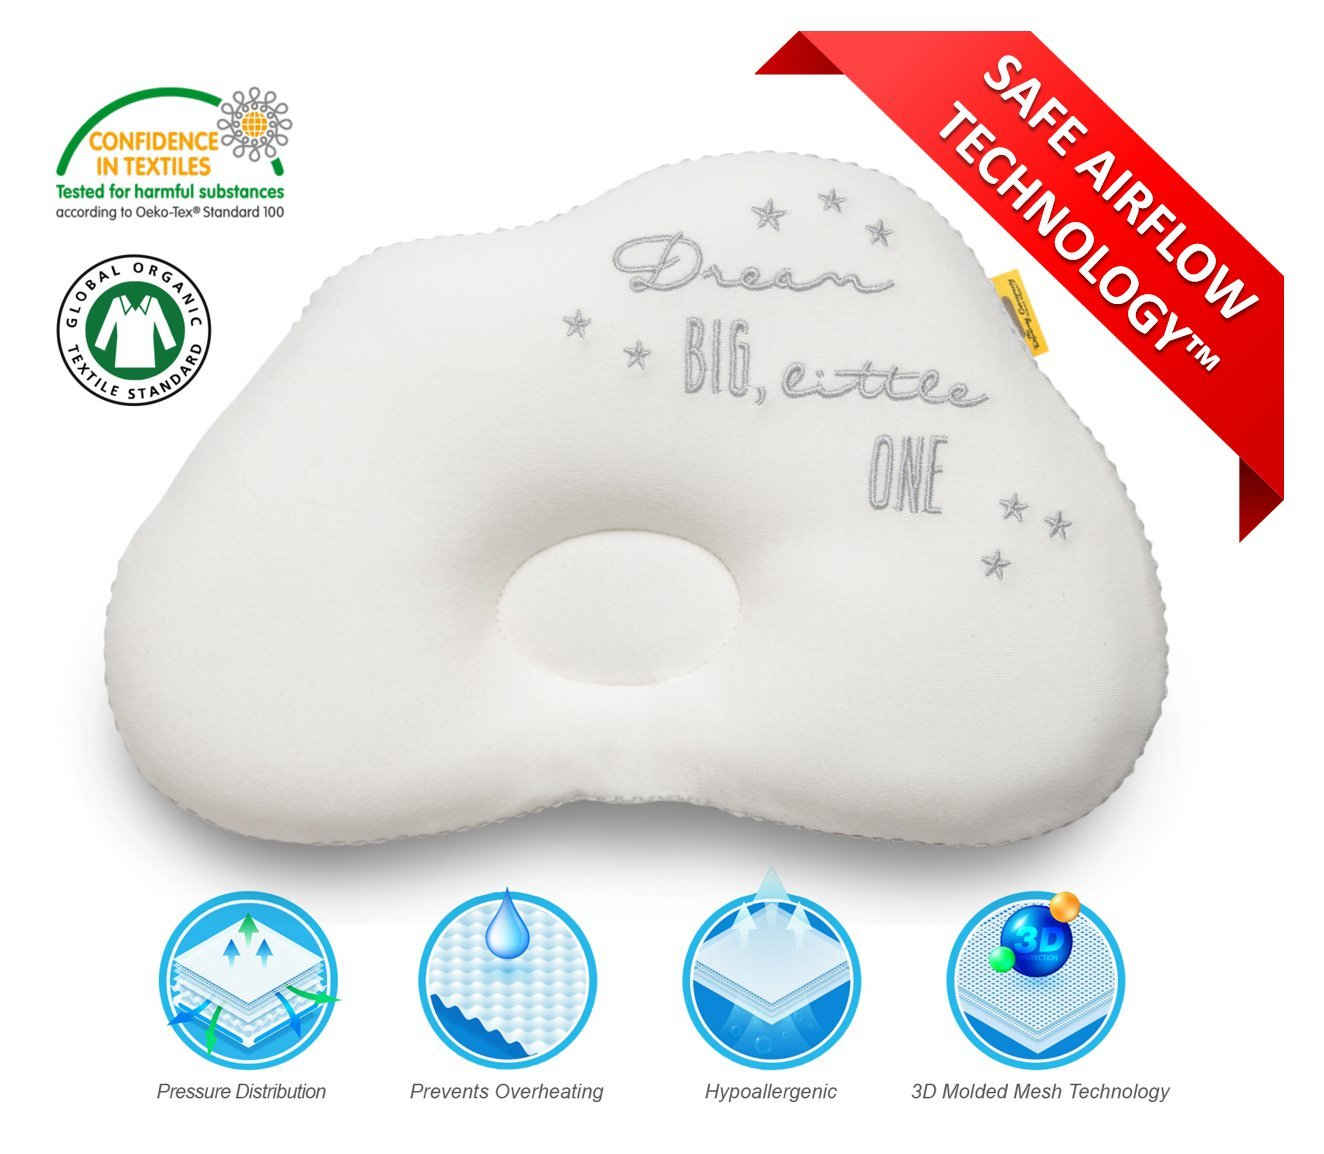 Baby Pillow for Flat Head  Newborn or Infant   Soft Organic Cotton Breathable Washable Hypoallergenic   Head Shaping and Neck Support   Premium Baby Shower Gift